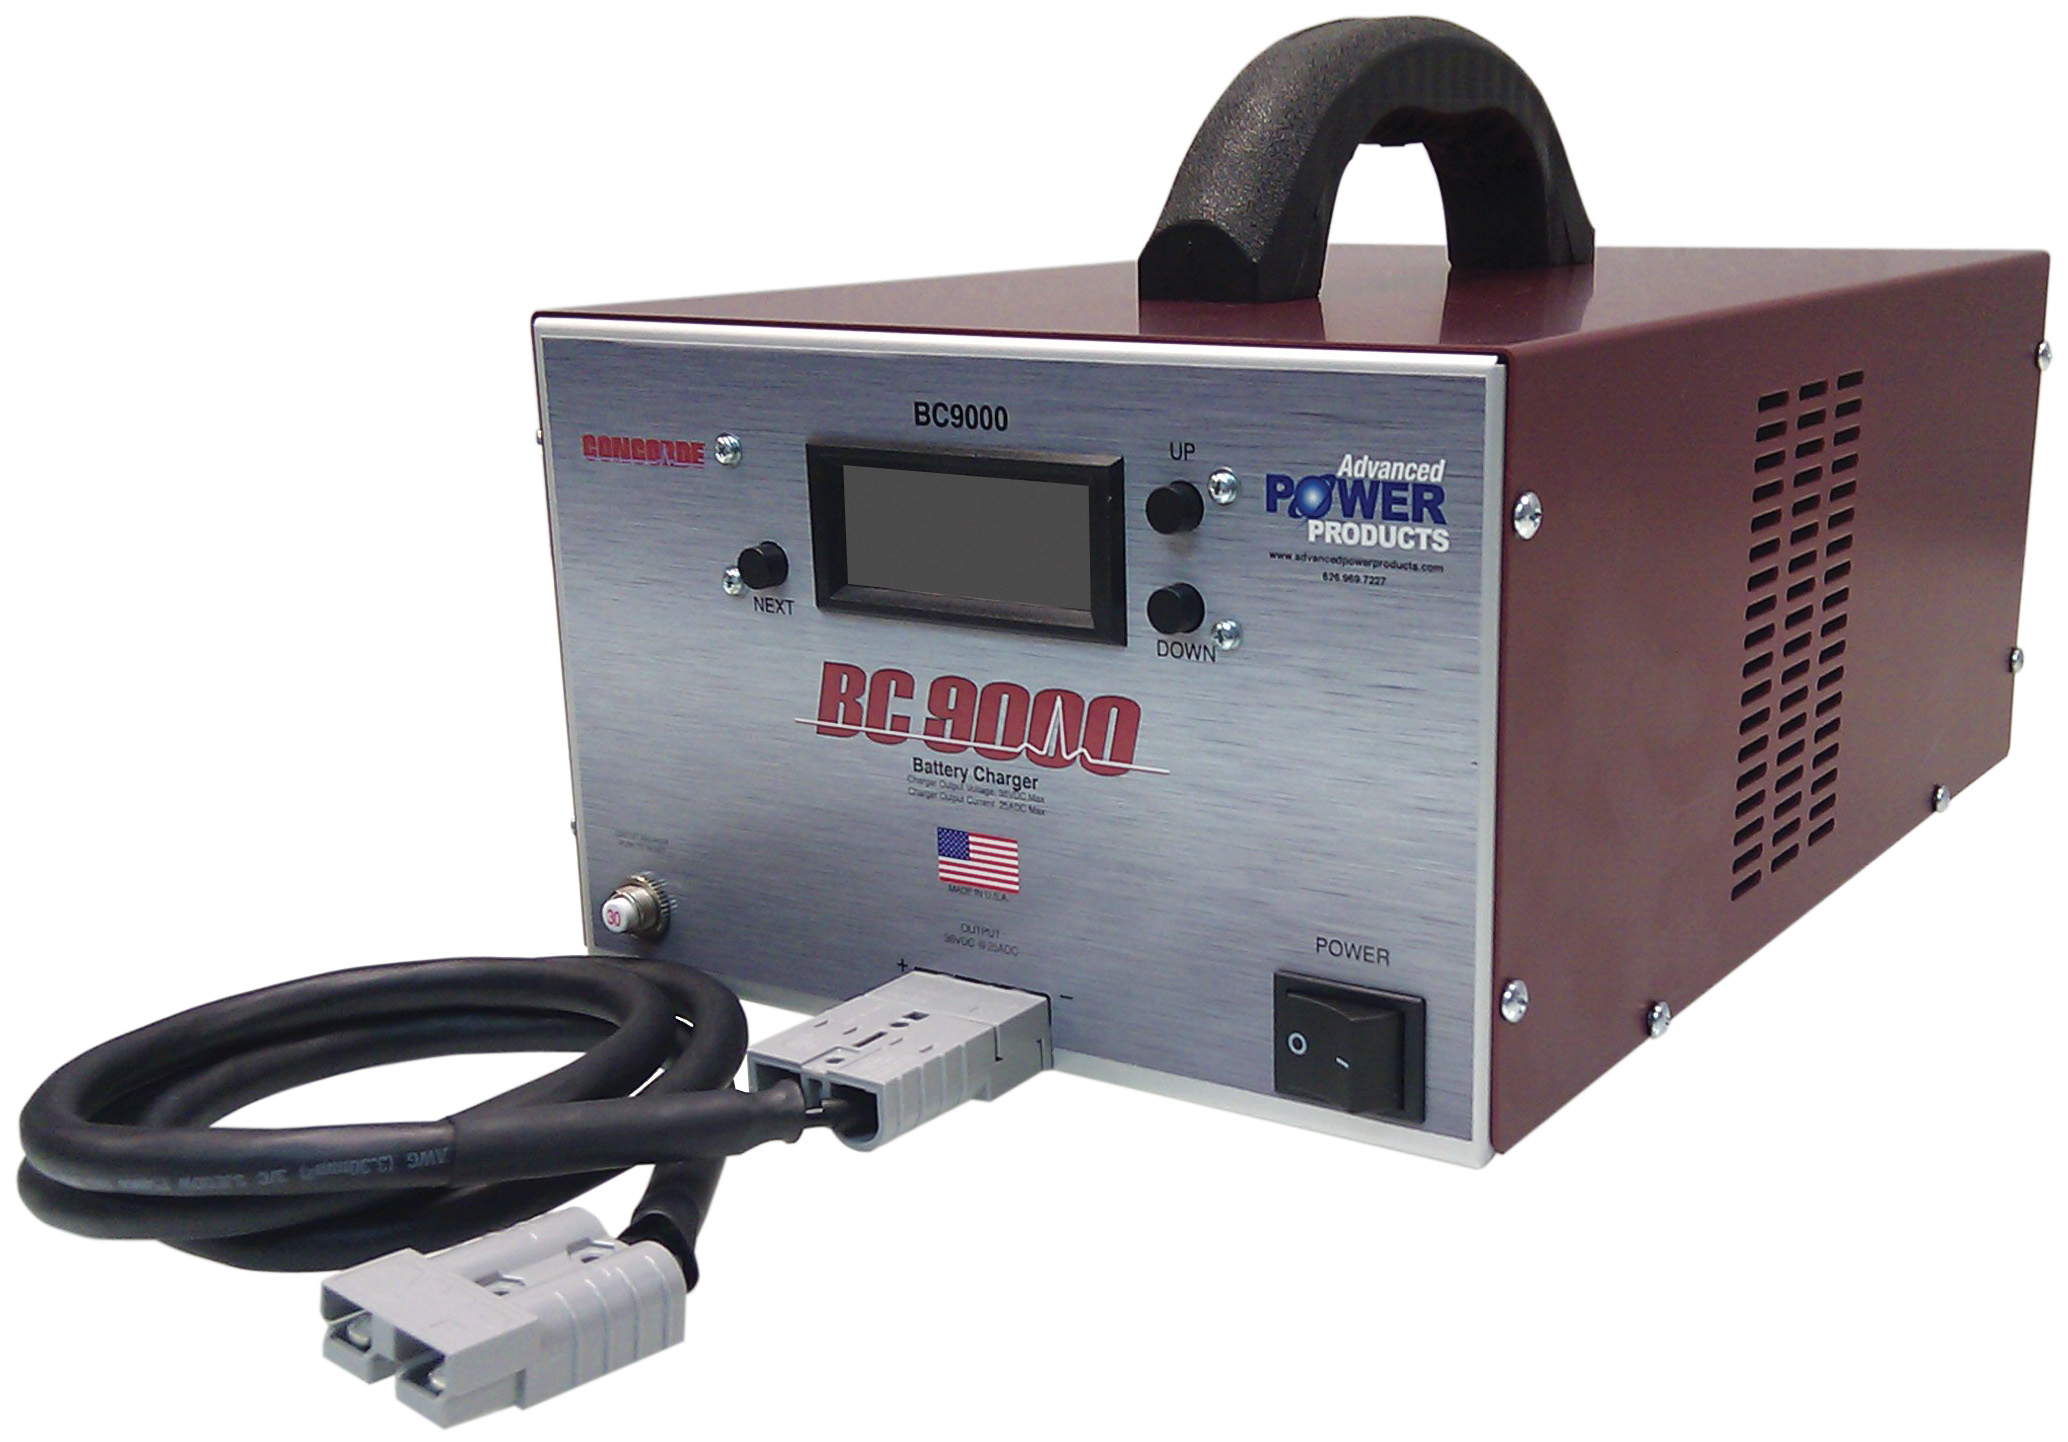 BC9000 battery charger